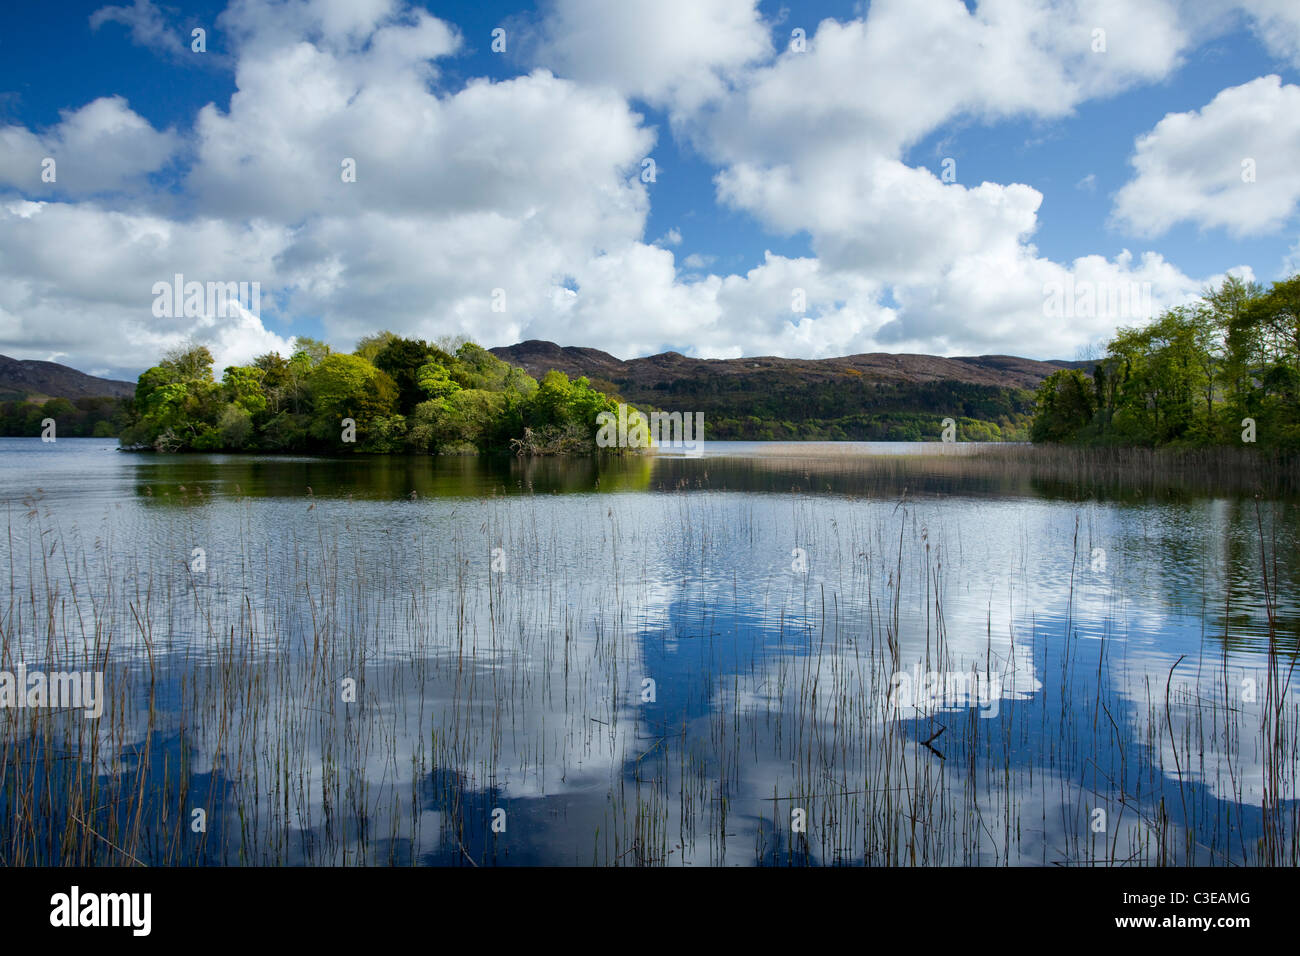 Summer reflections, Lough Gill, County Sligo, Ireland. - Stock Image